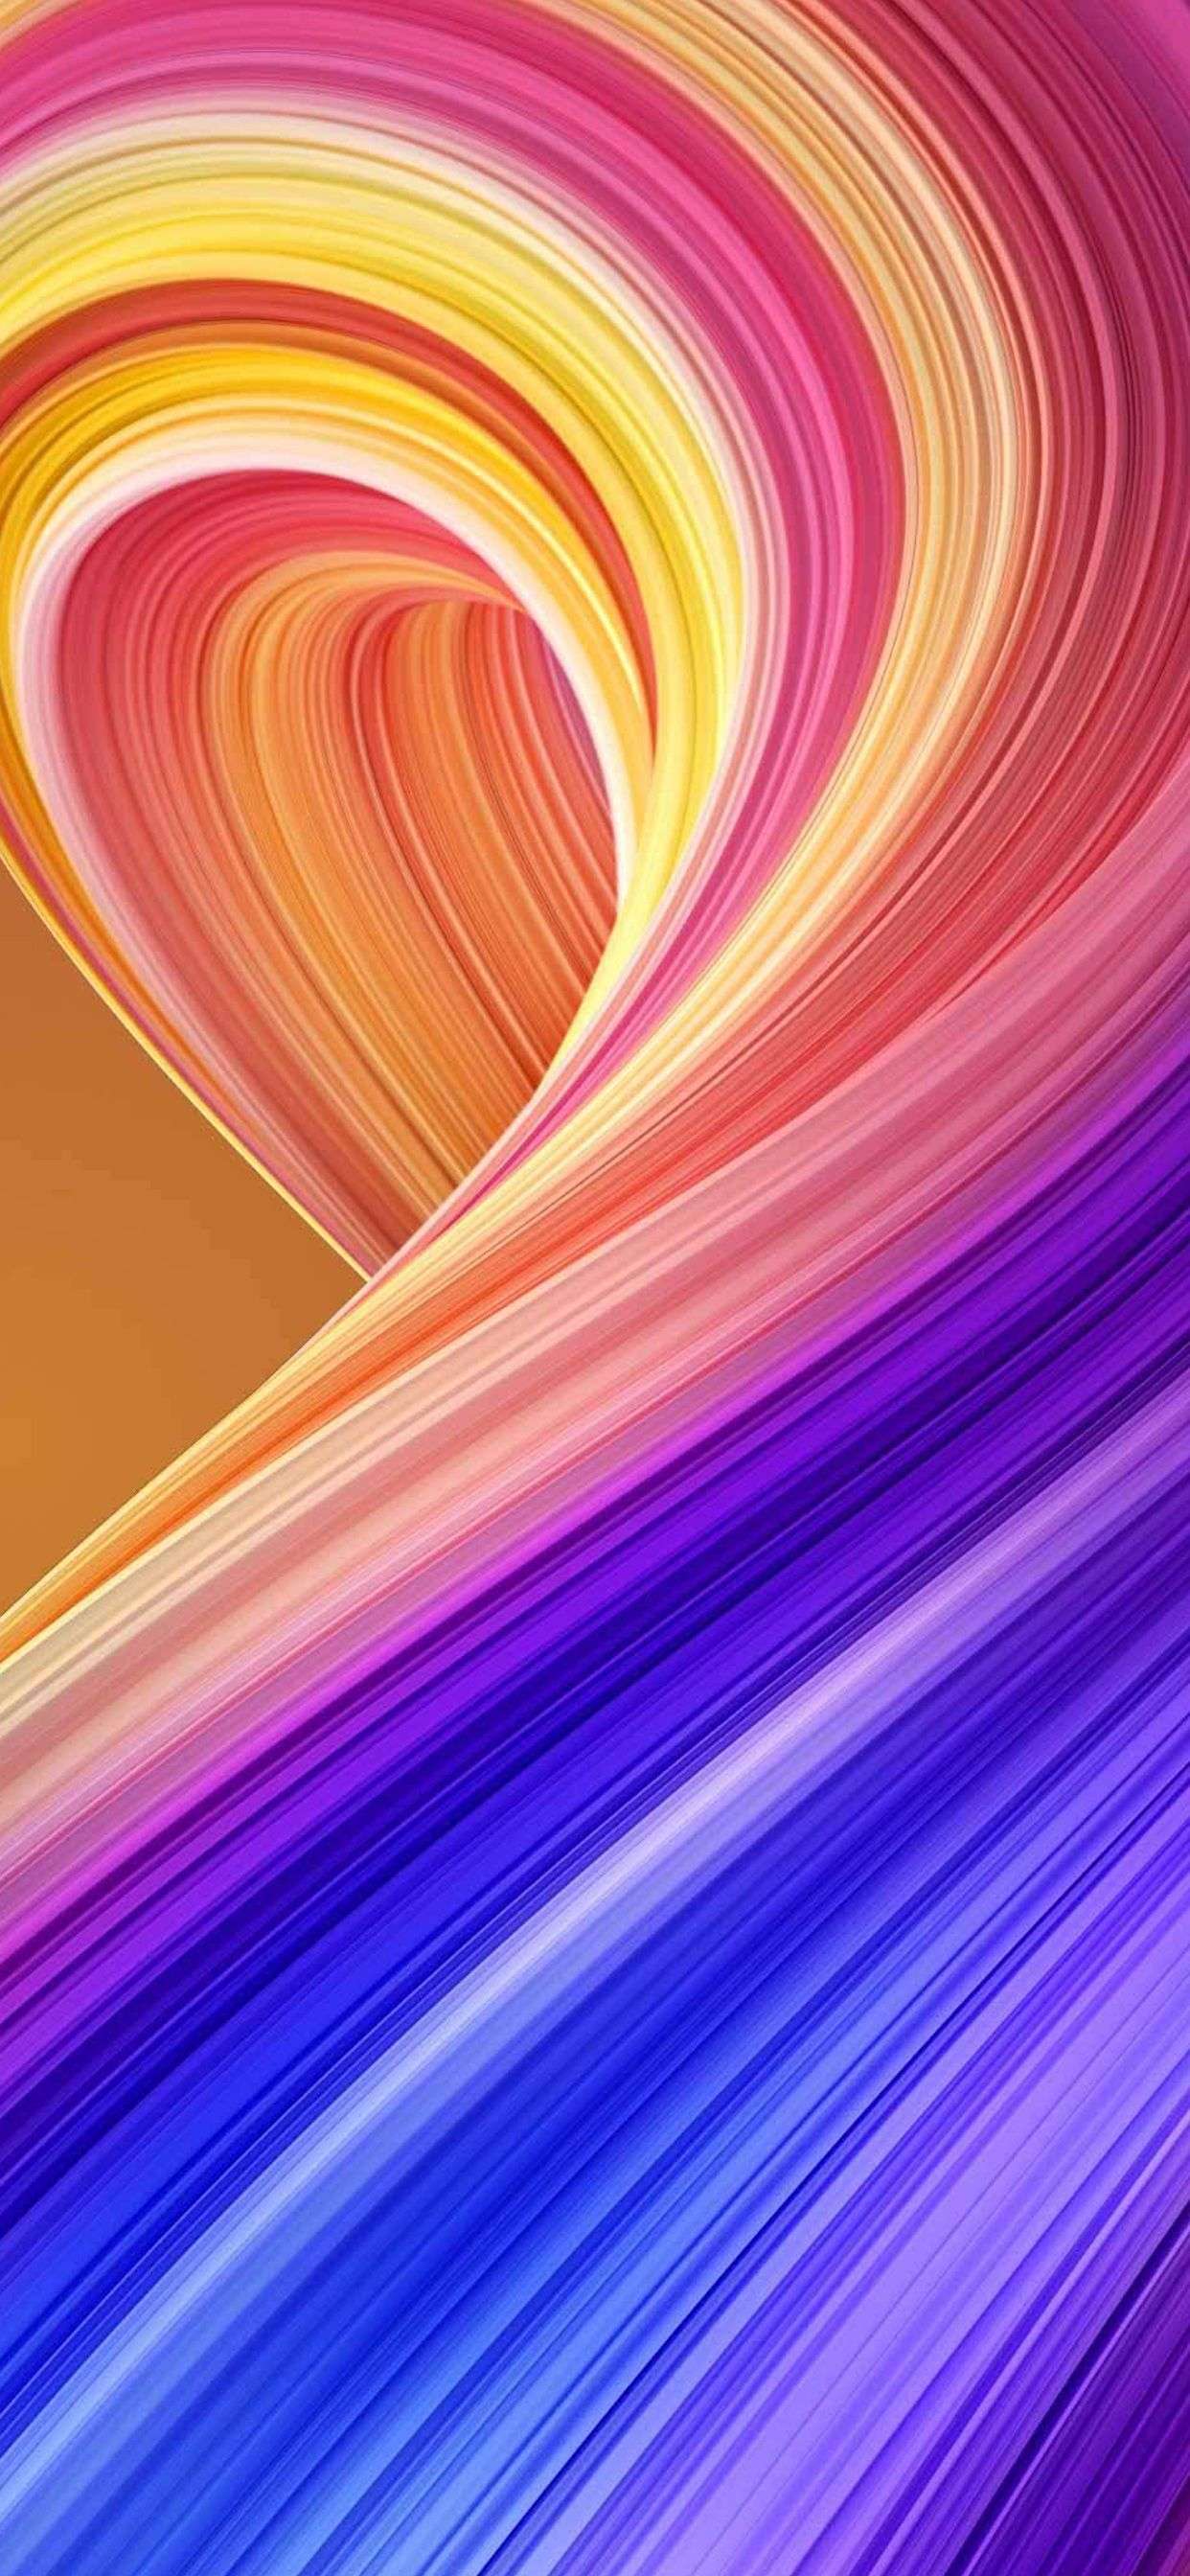 Apple Iphone Xs Max Wallpapers Top Free Apple Iphone Xs